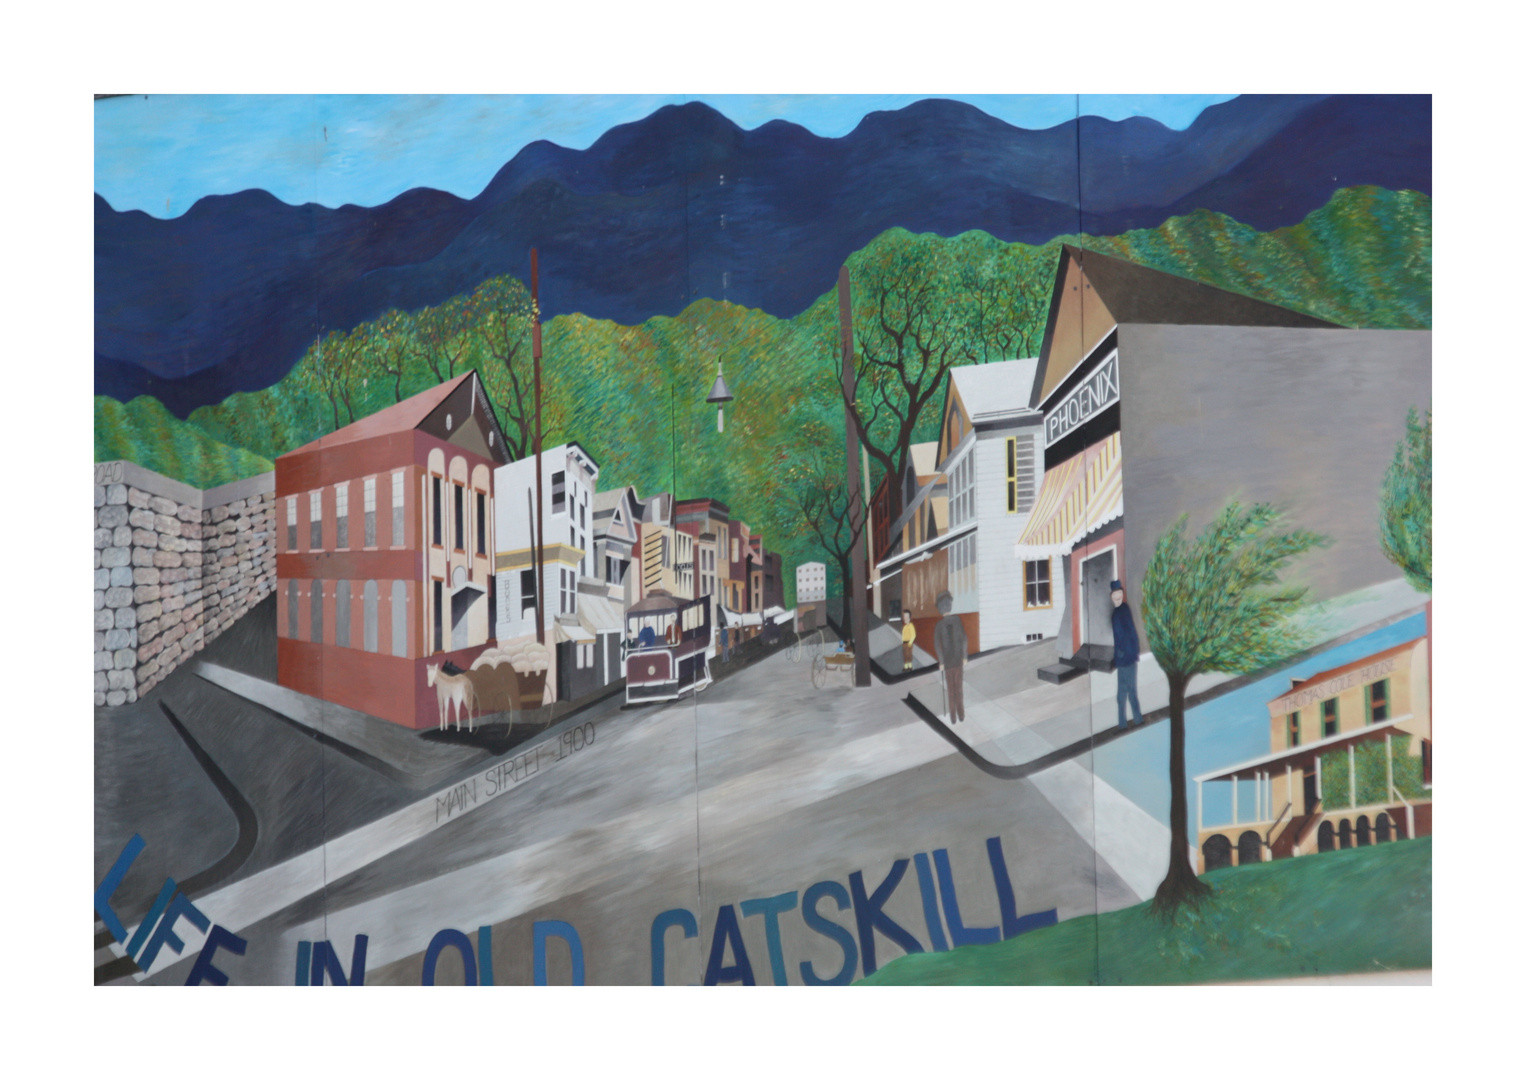 Life in Old Catskill